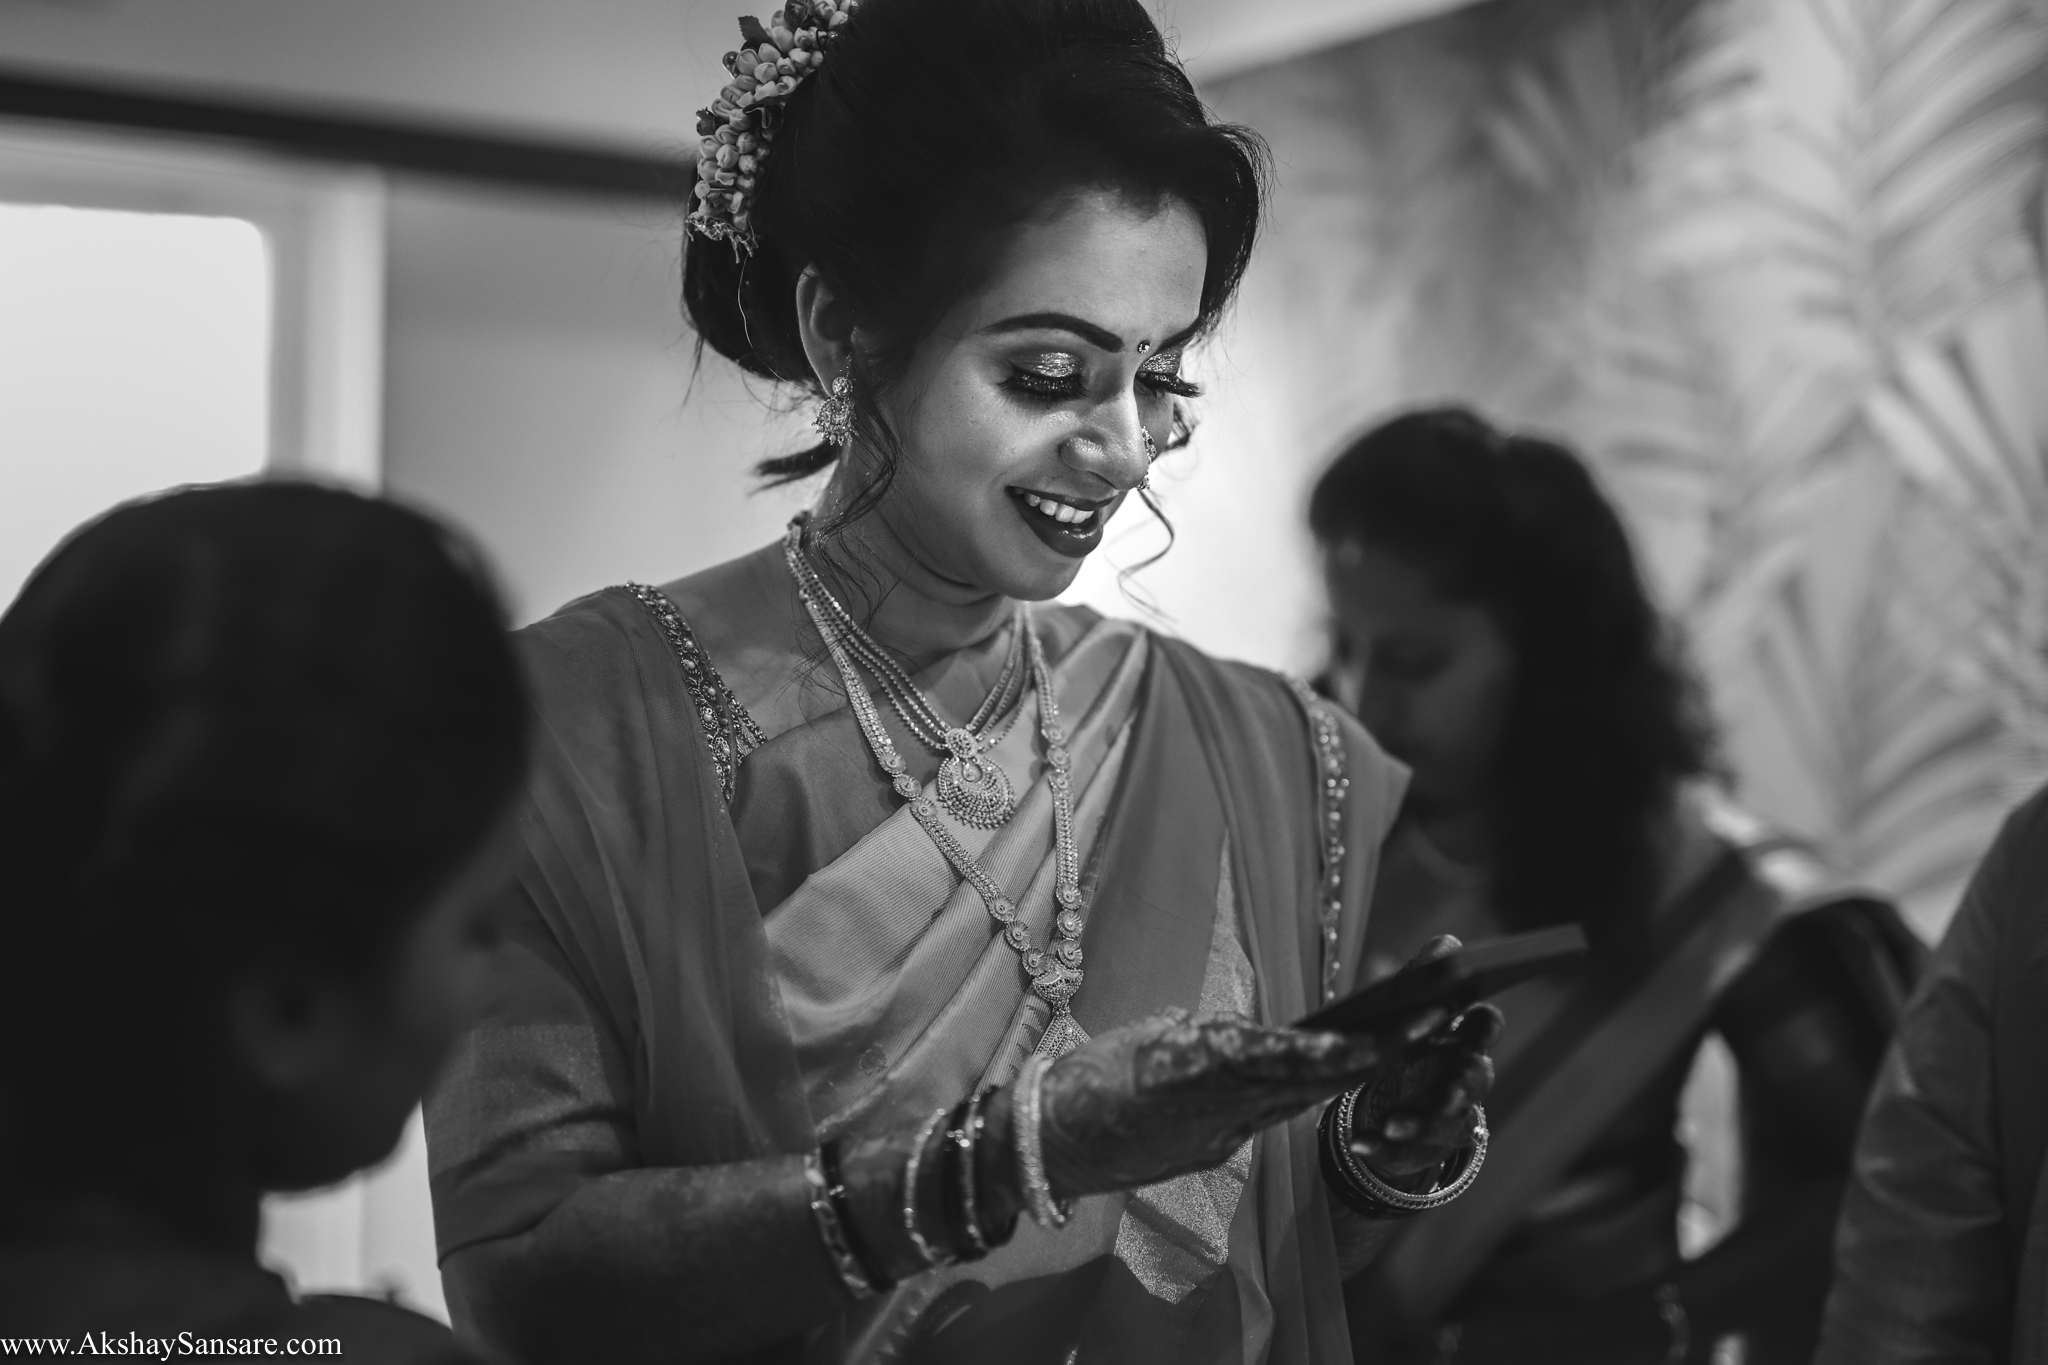 Nupur & Rohan wedding Akshay Sansare Photography best wedding photographer in mumbai India Candid(34).jpg